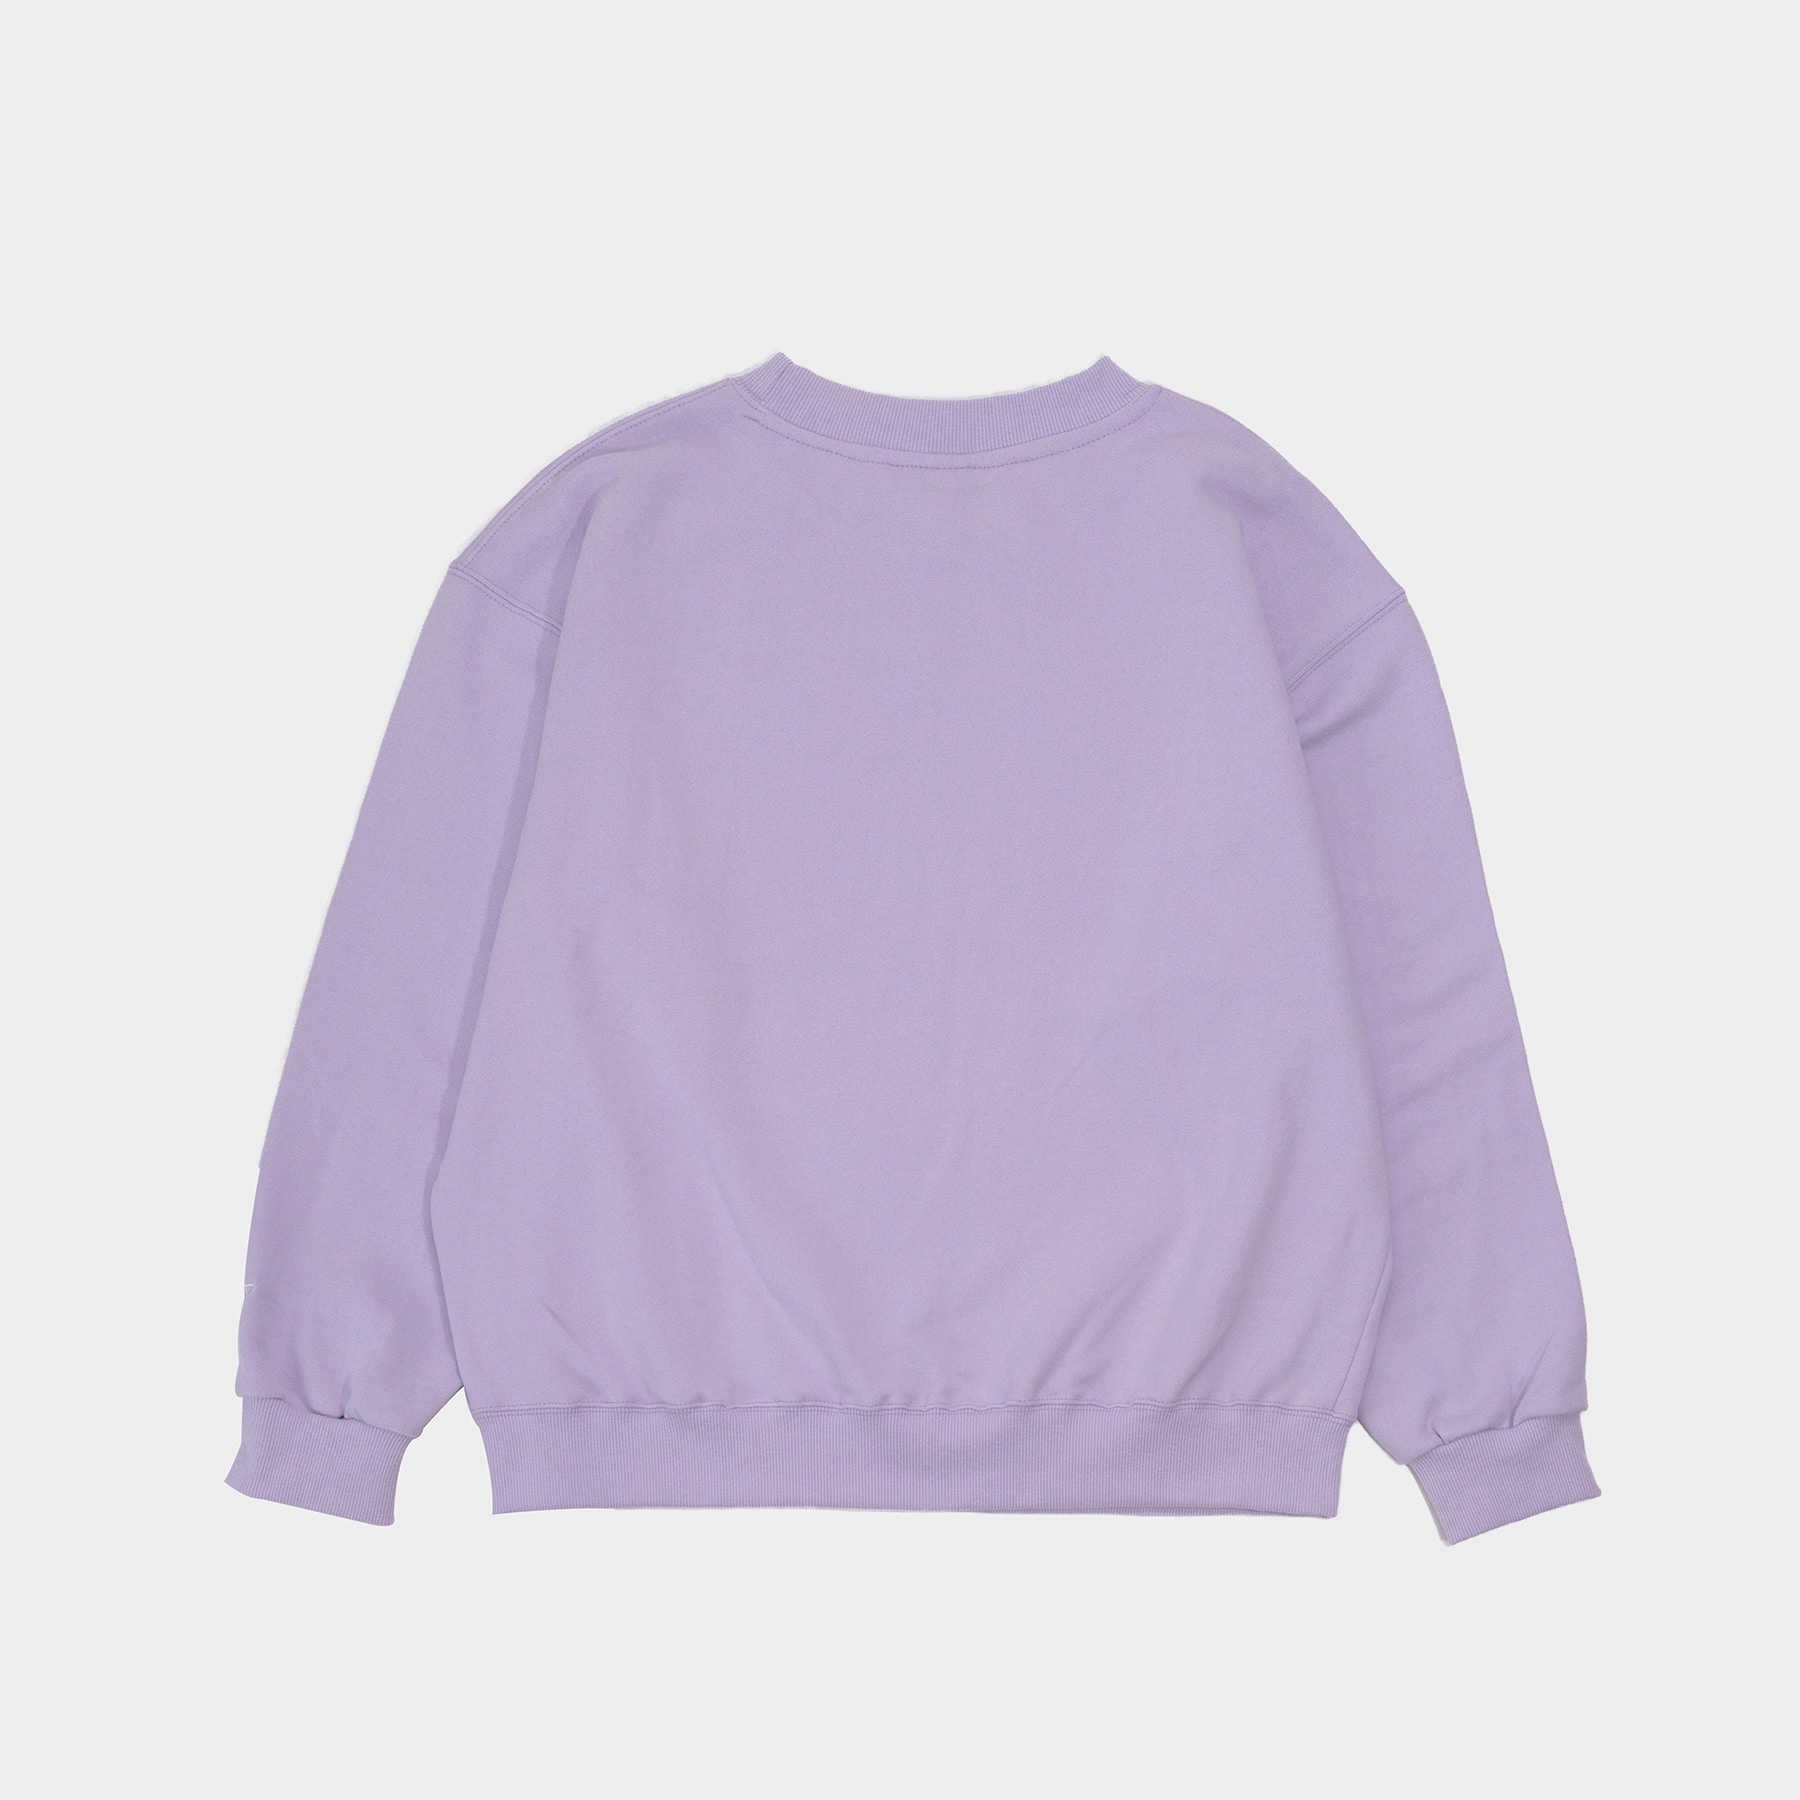 Title sweatshirt(Oversize fit) Lavender